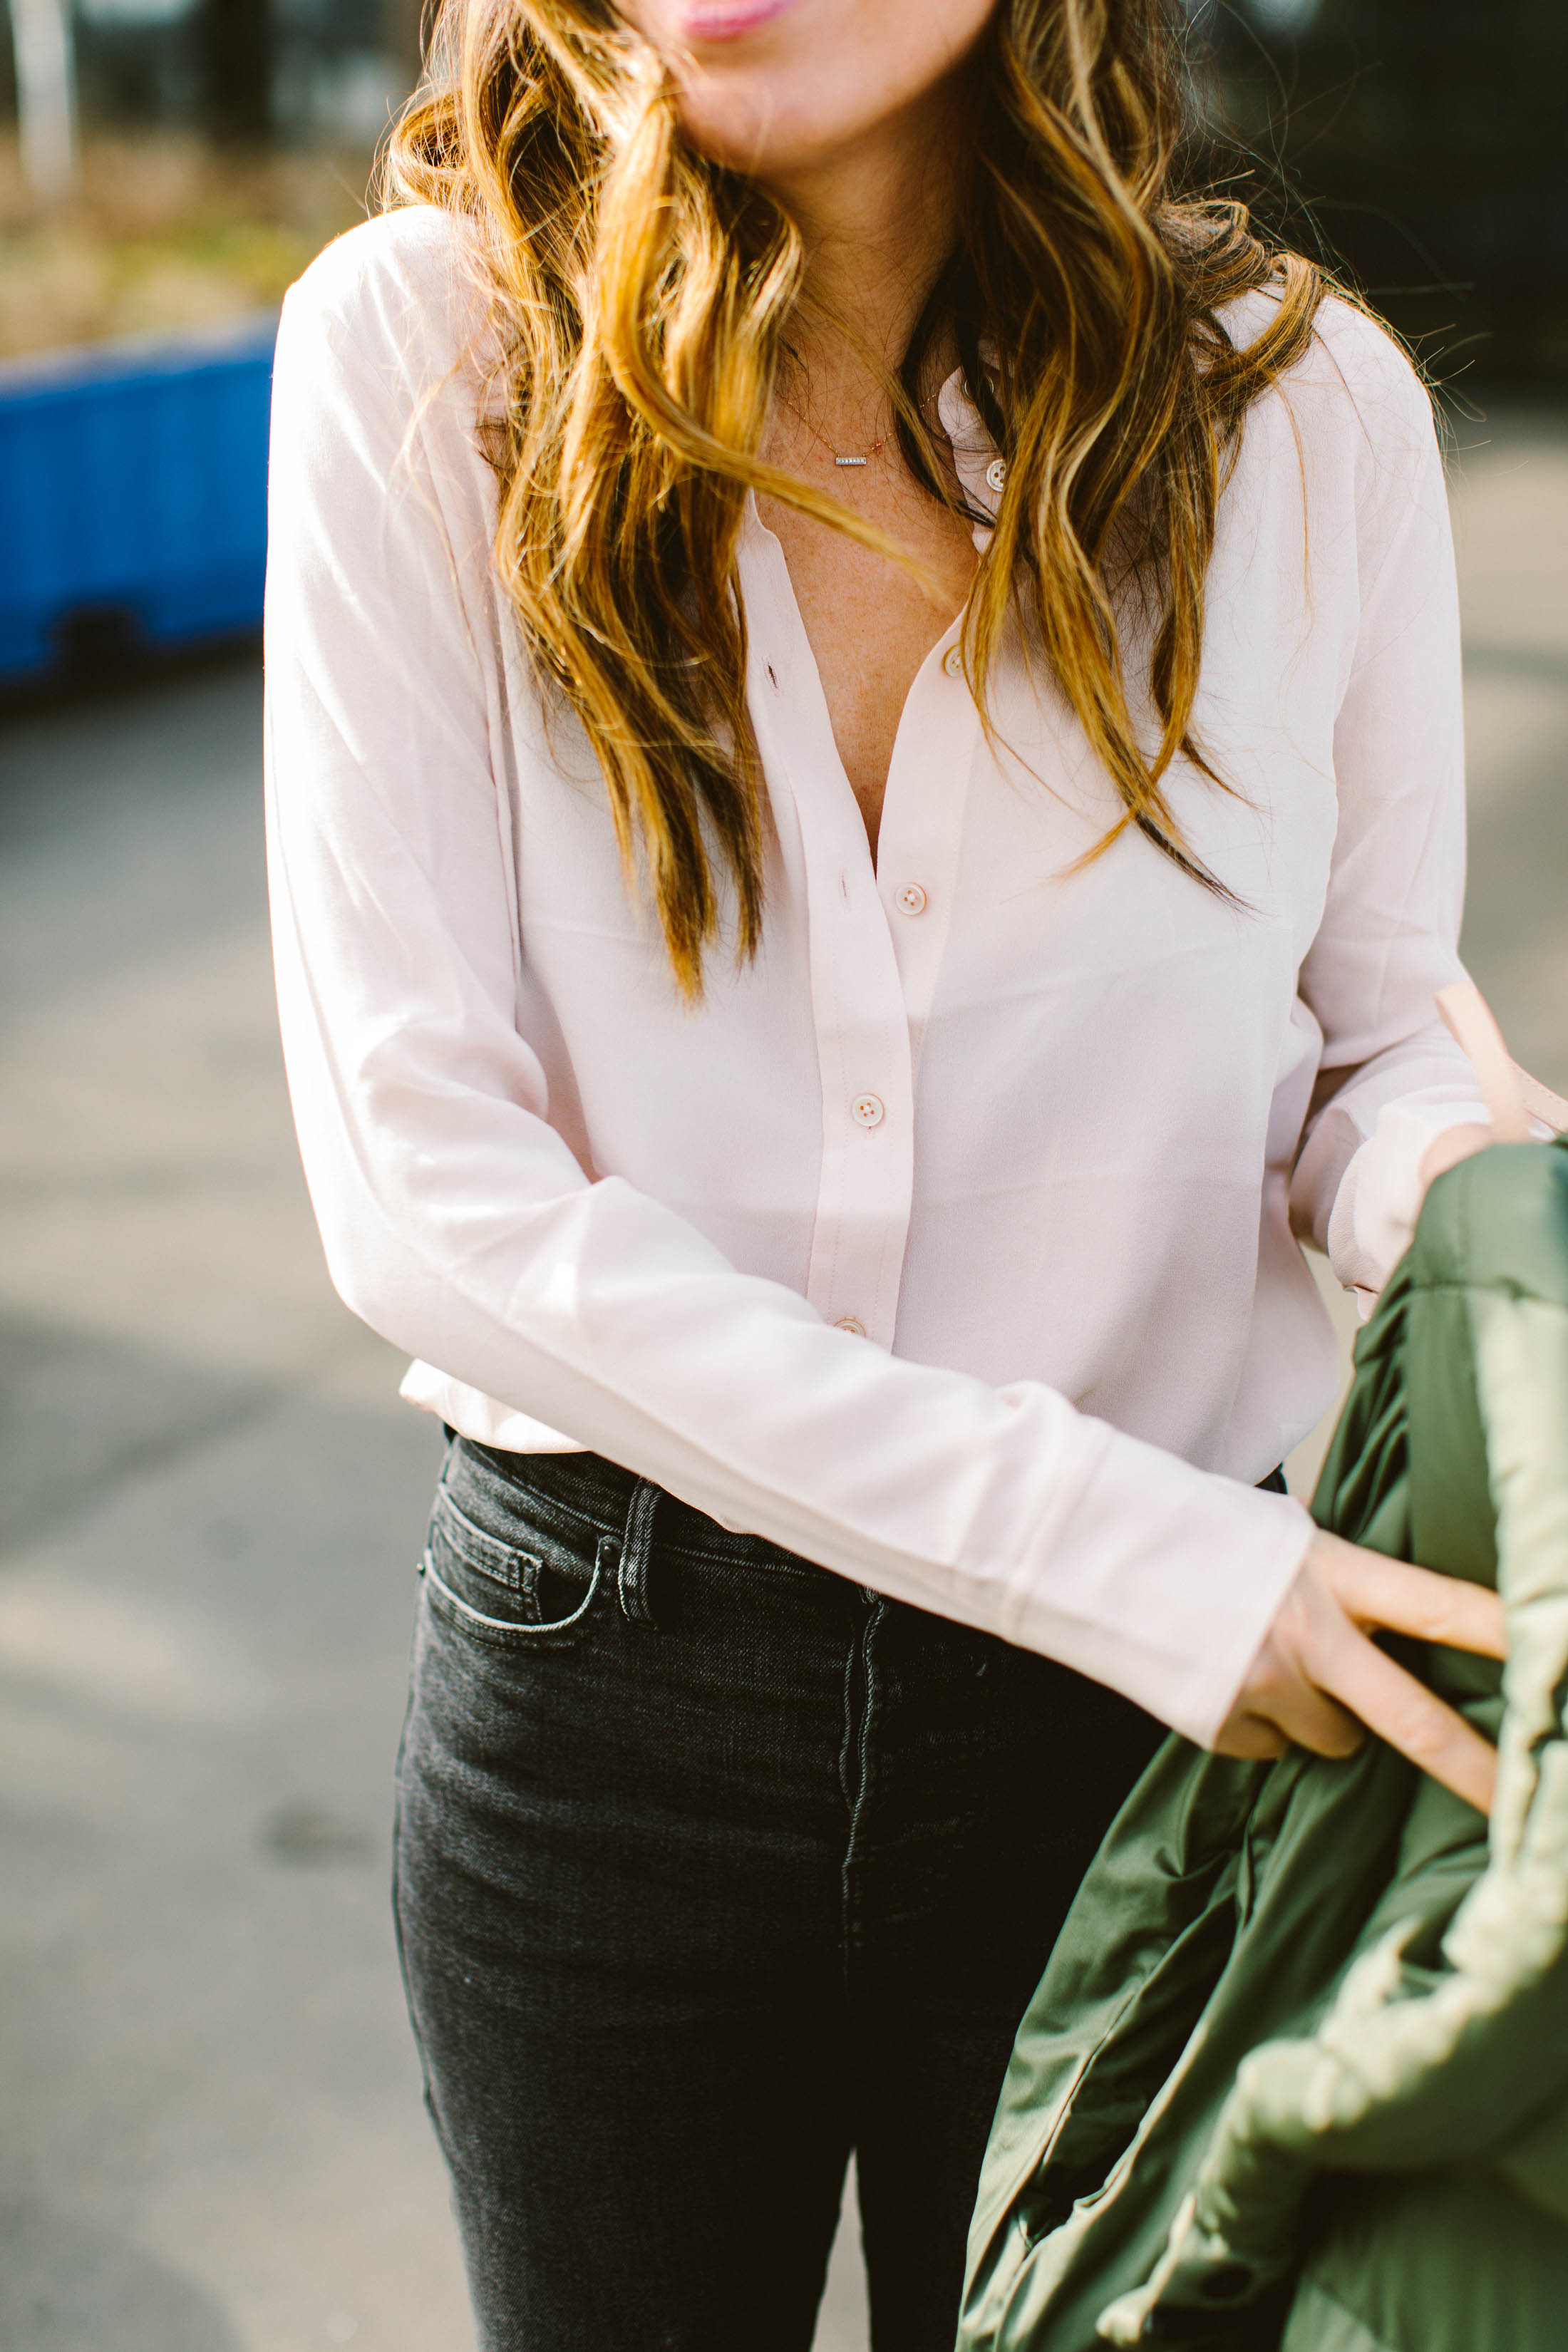 We're obsessed with Everlane. Their pieces are perf for layering + creating outfits & capsule wardrobes. From the bra down to the Day Glove, we're smitten.